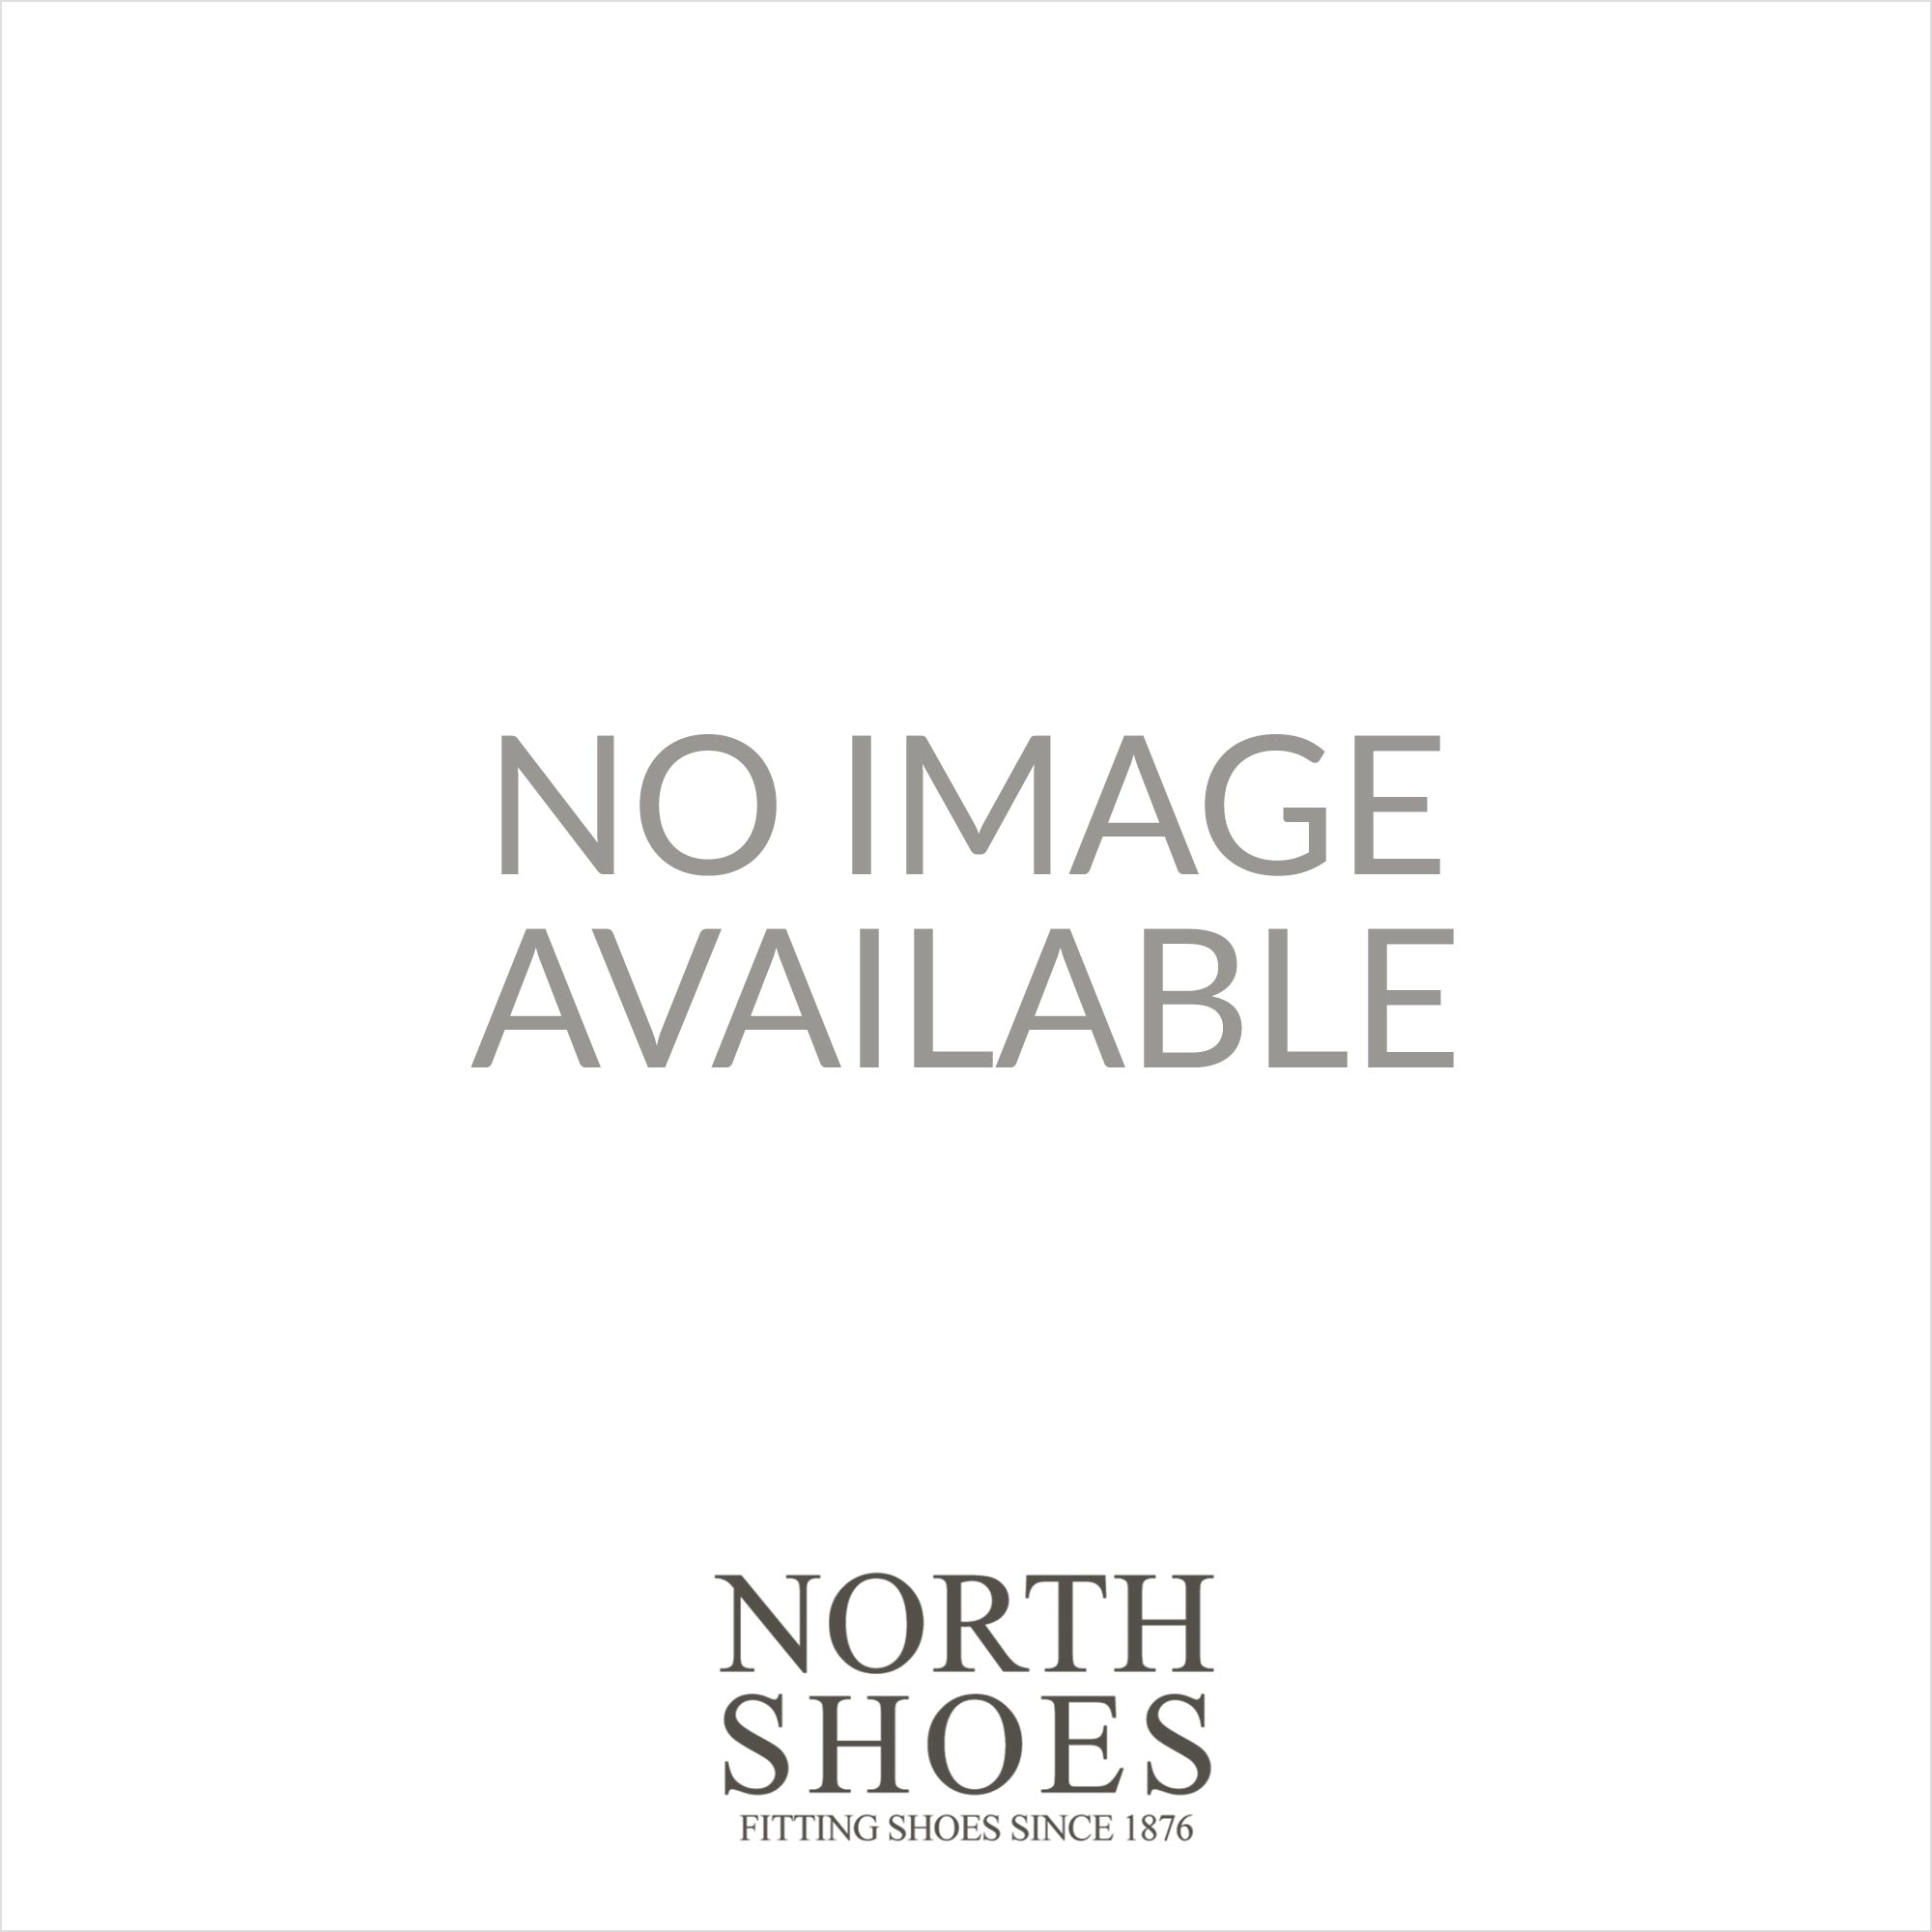 a6cfe7cbb51 Clarks Vendra Bloom Navy Suede Leather Womens Slip On Court Wedge Shoe -  Clarks from North Shoes UK